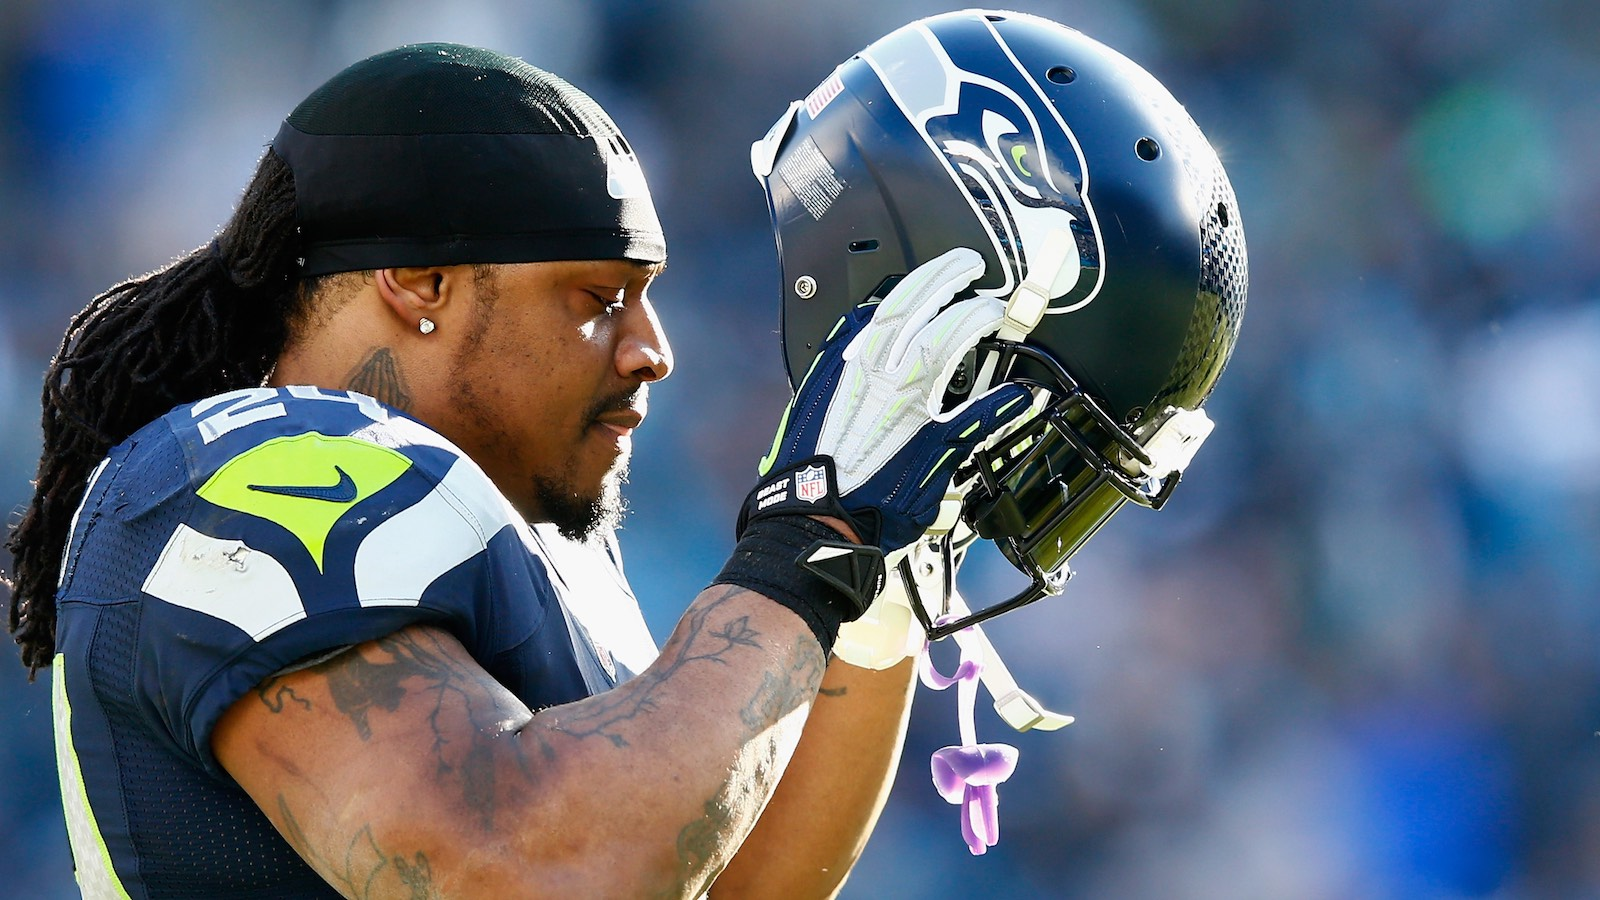 082416-NFL-Seattle-Seahawks-Marshawn-Lynch